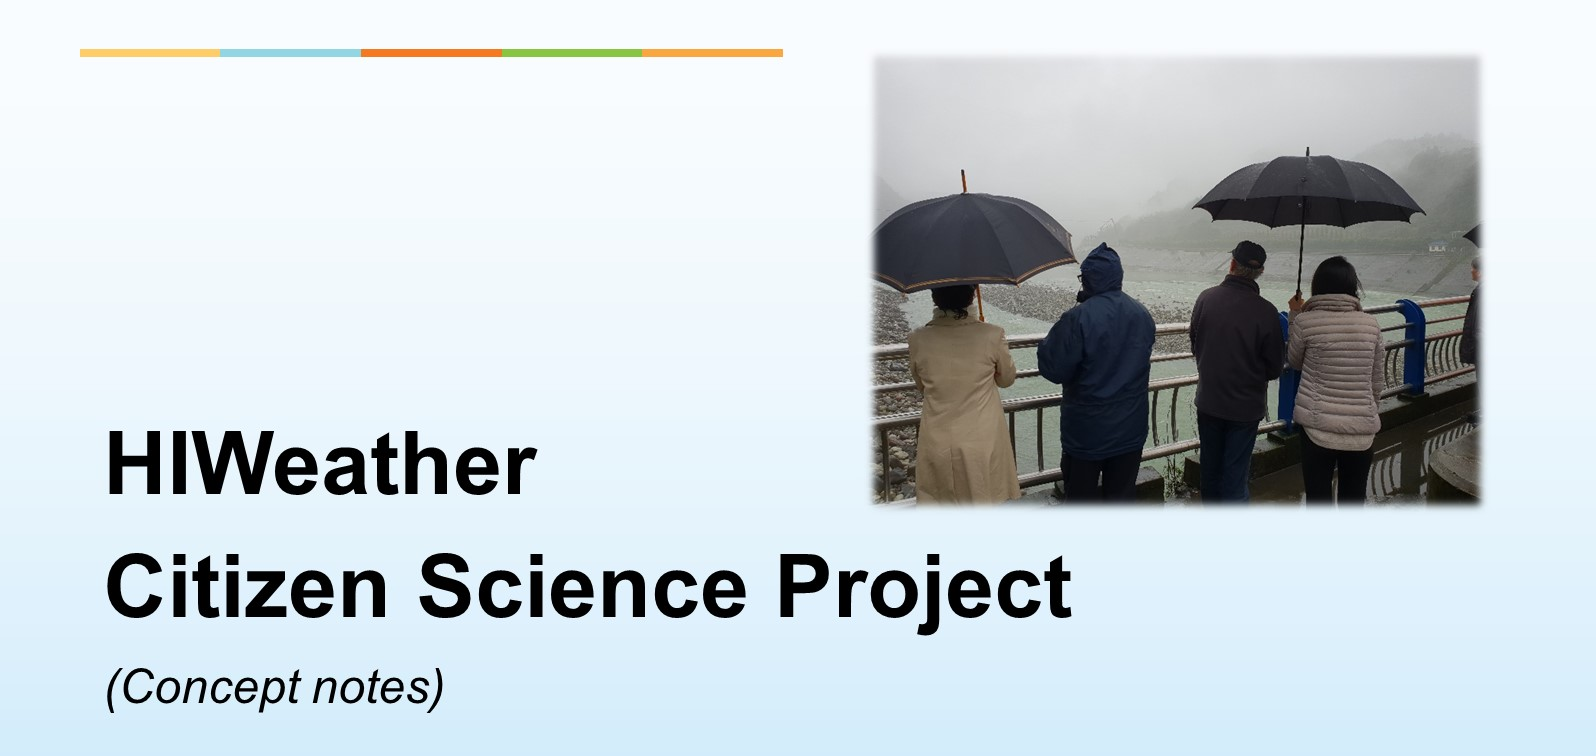 HIWeather Citizen Science Project